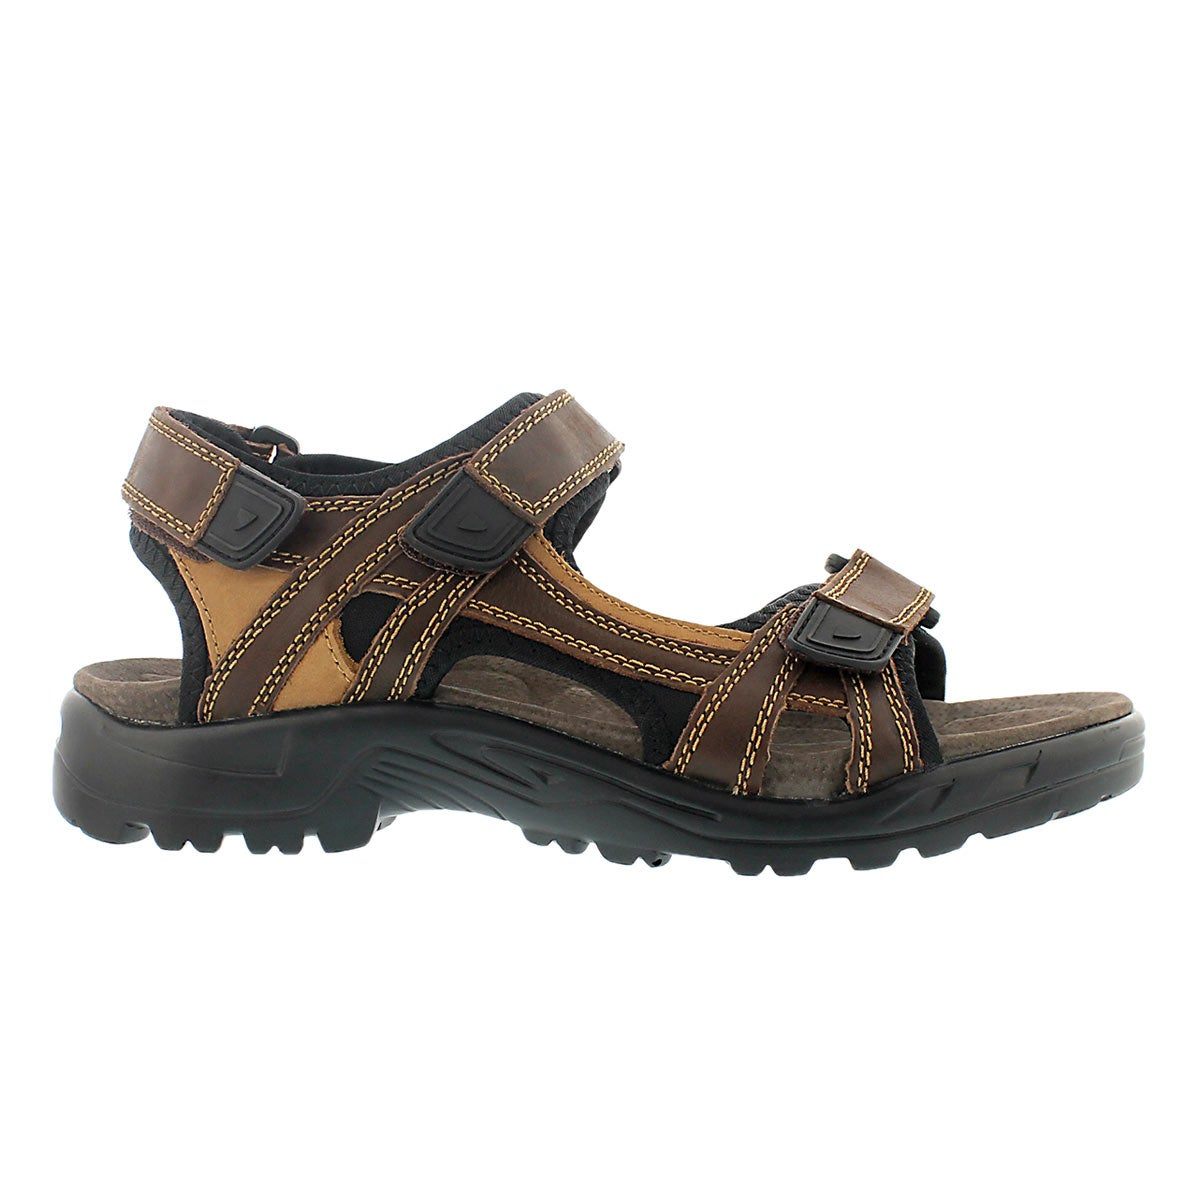 Mns Klutch brown 3 strap sport sandal